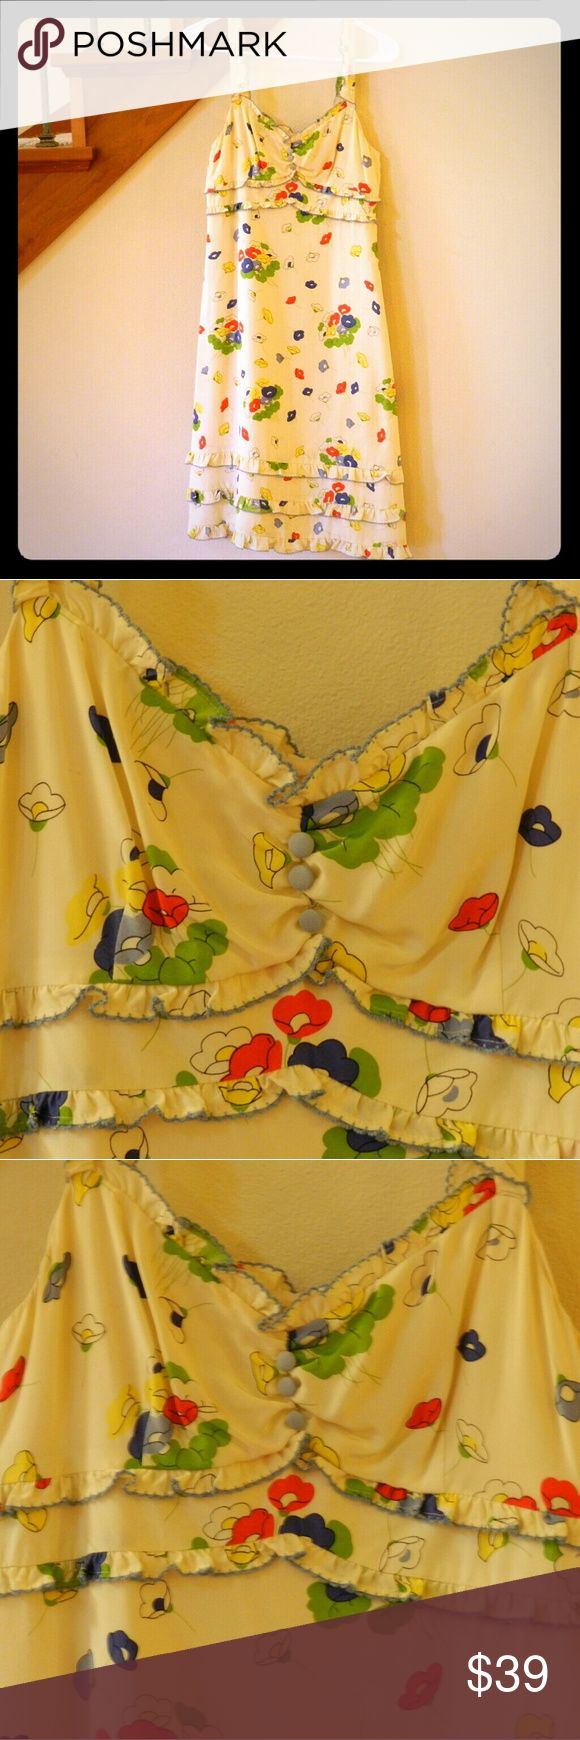 """Vintage floral silk dress Vintage Odille dress for Anthropologie. ?Beautiful and charming styling is so eye catching in cream silk with red, yellow, and blue flower patches. ?Edges are trimmed with ruffles with delicate blue embroidery. ?Bodice decorated with a row of blue fabric covered buttons. ?Side zip. ?100% silk; 100% acetate lining. ?Size 4, slim fitting, approximate measurements: ?40""""L, 14""""W, 17""""B. Anthropologie  Dresses Midi"""